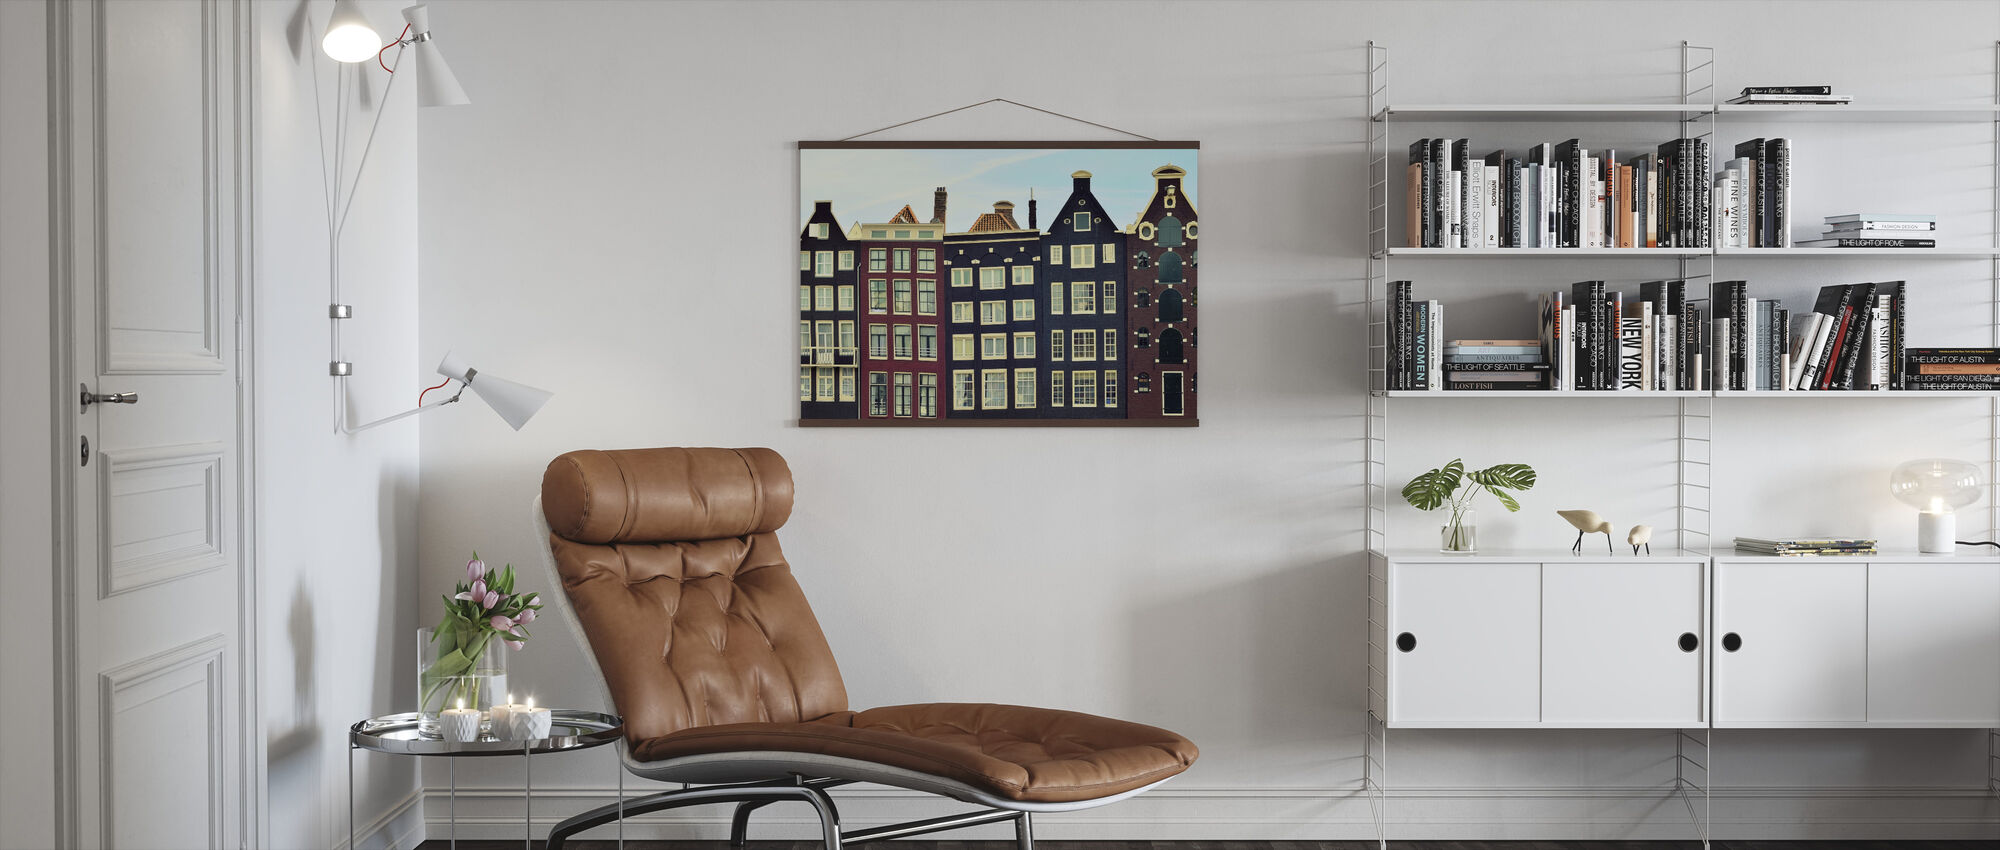 Amsterdamse Huizen - Poster - Woonkamer